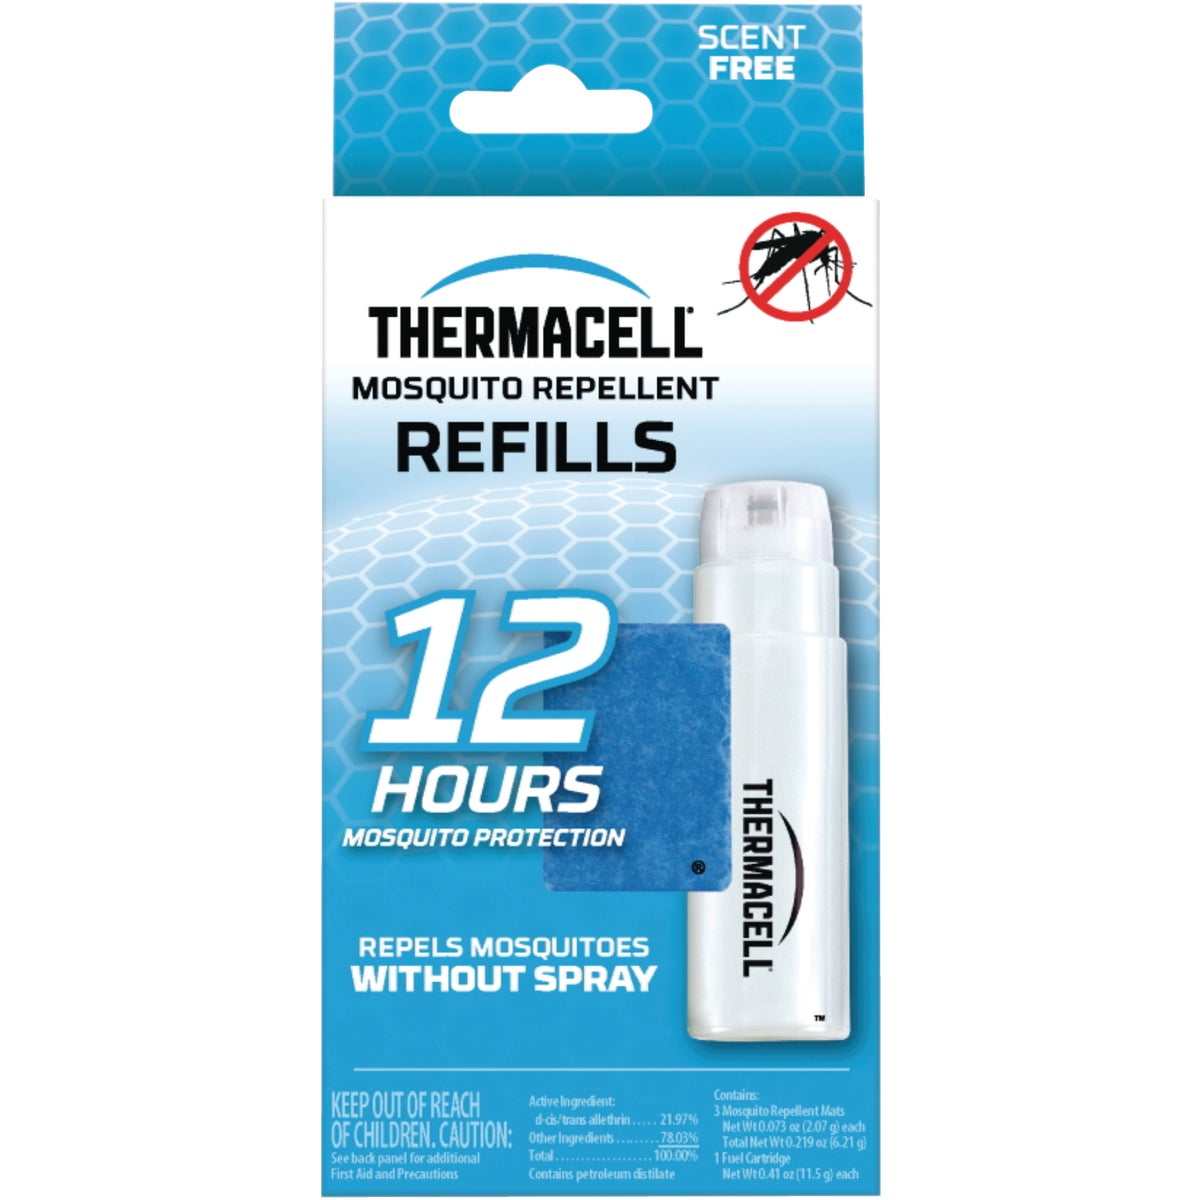 Schawbel Corp 1 PAK THERMACELL REFILL MR000-12